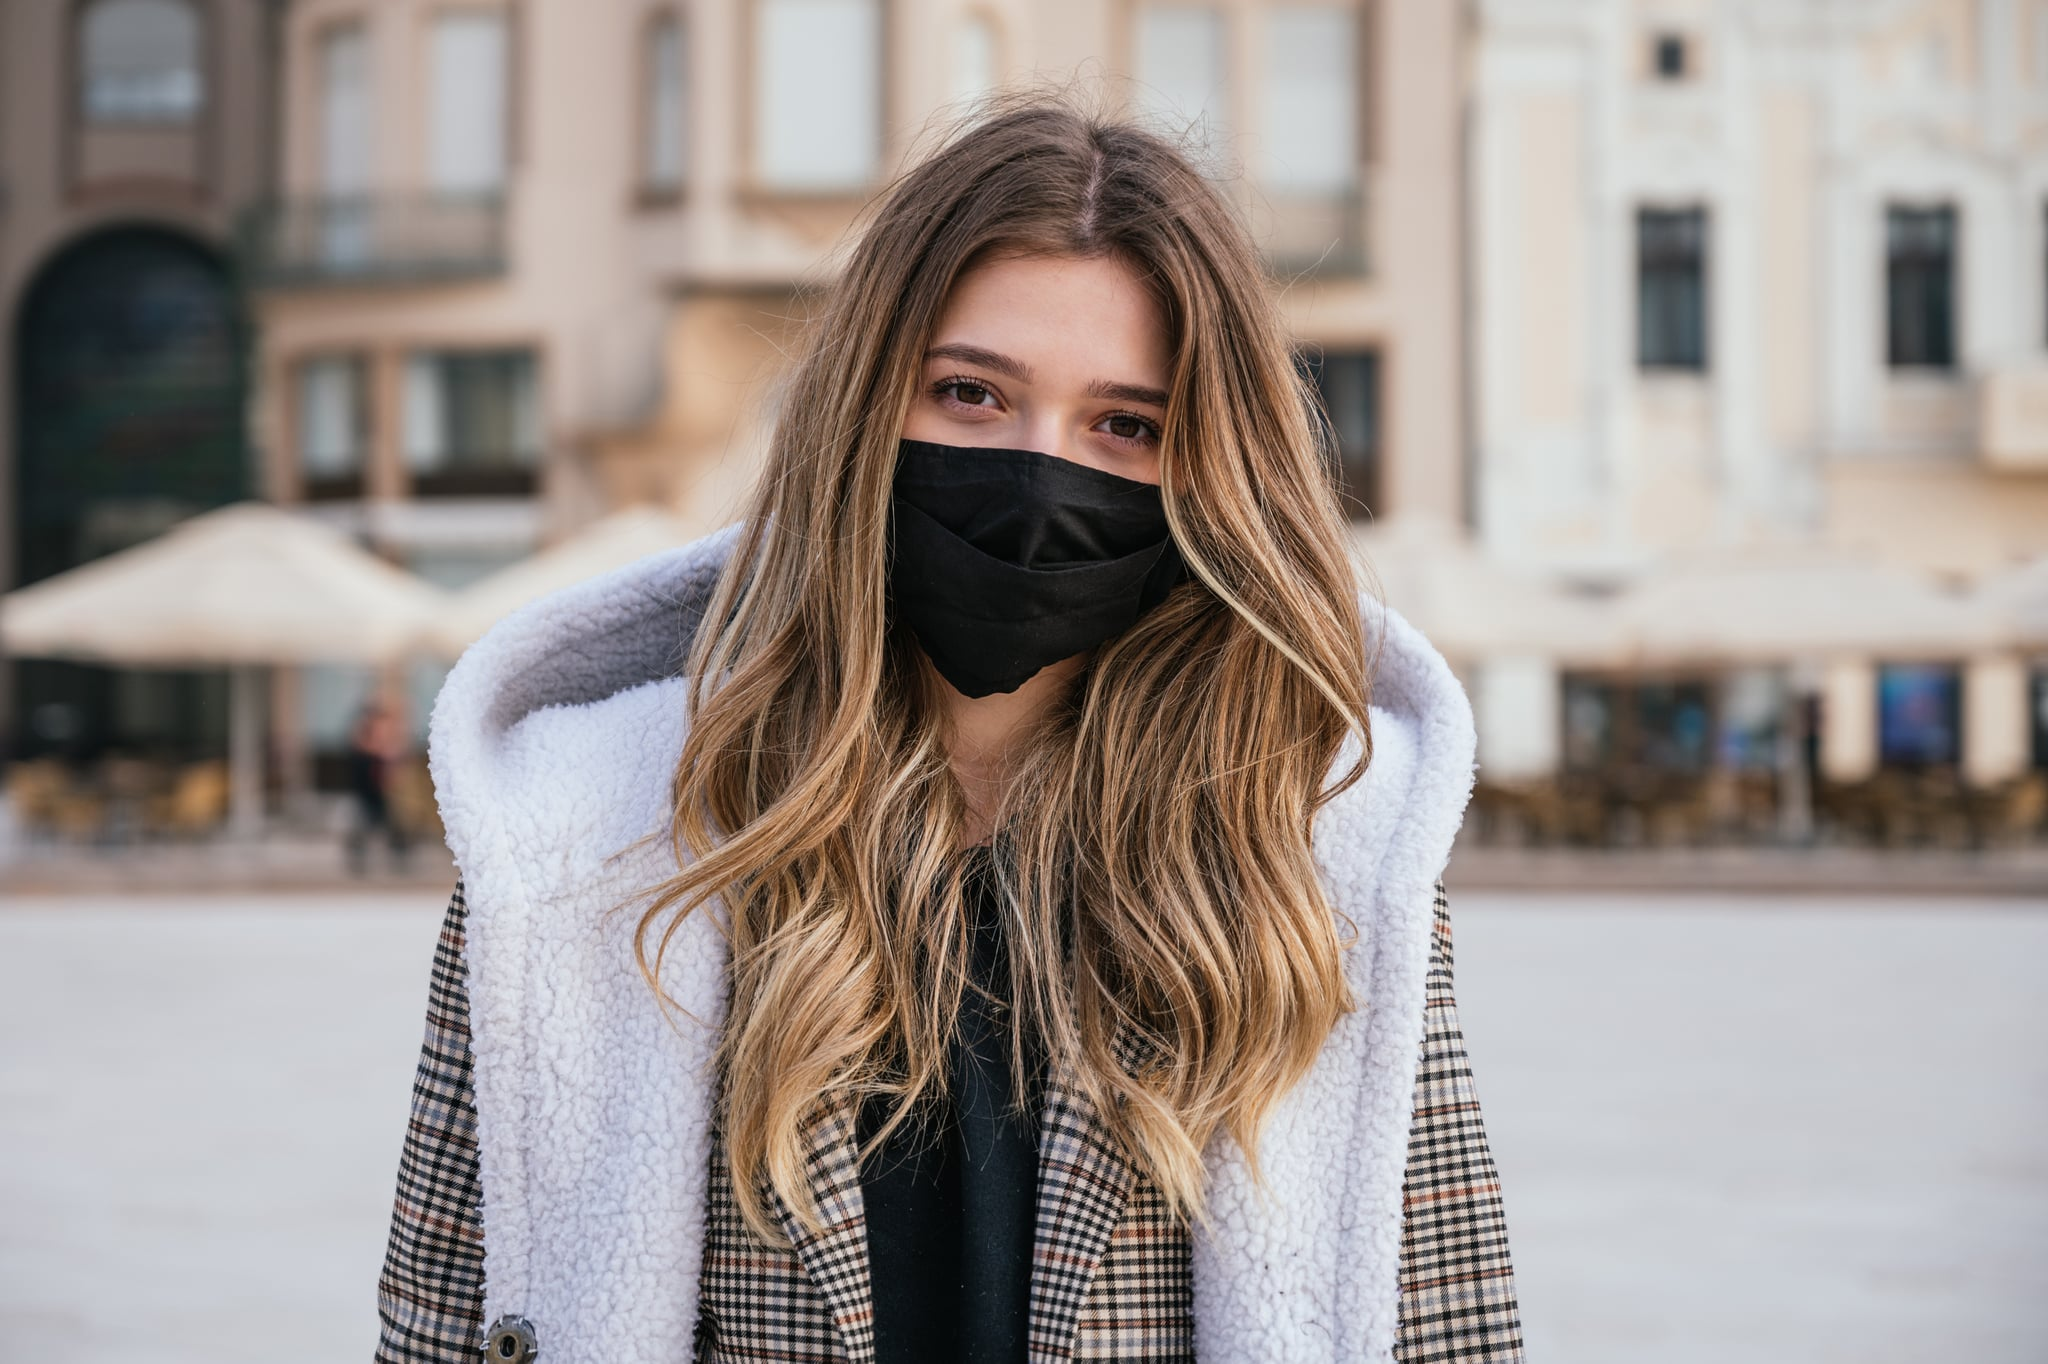 Portrait of a young woman wearing mask and winter clothes